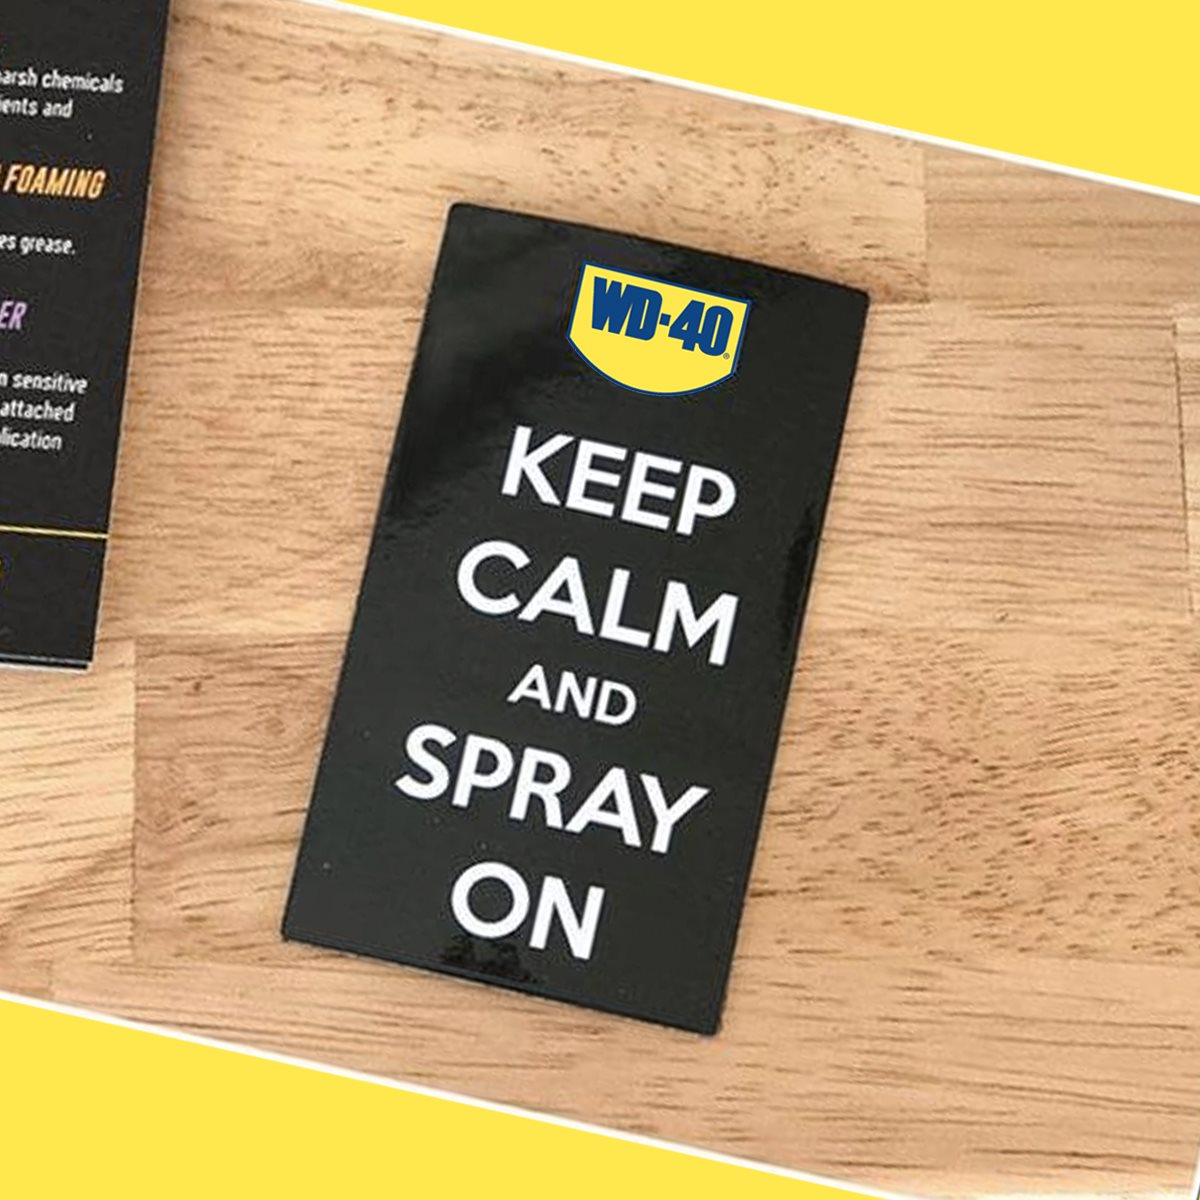 wd40 keep calm and spray on